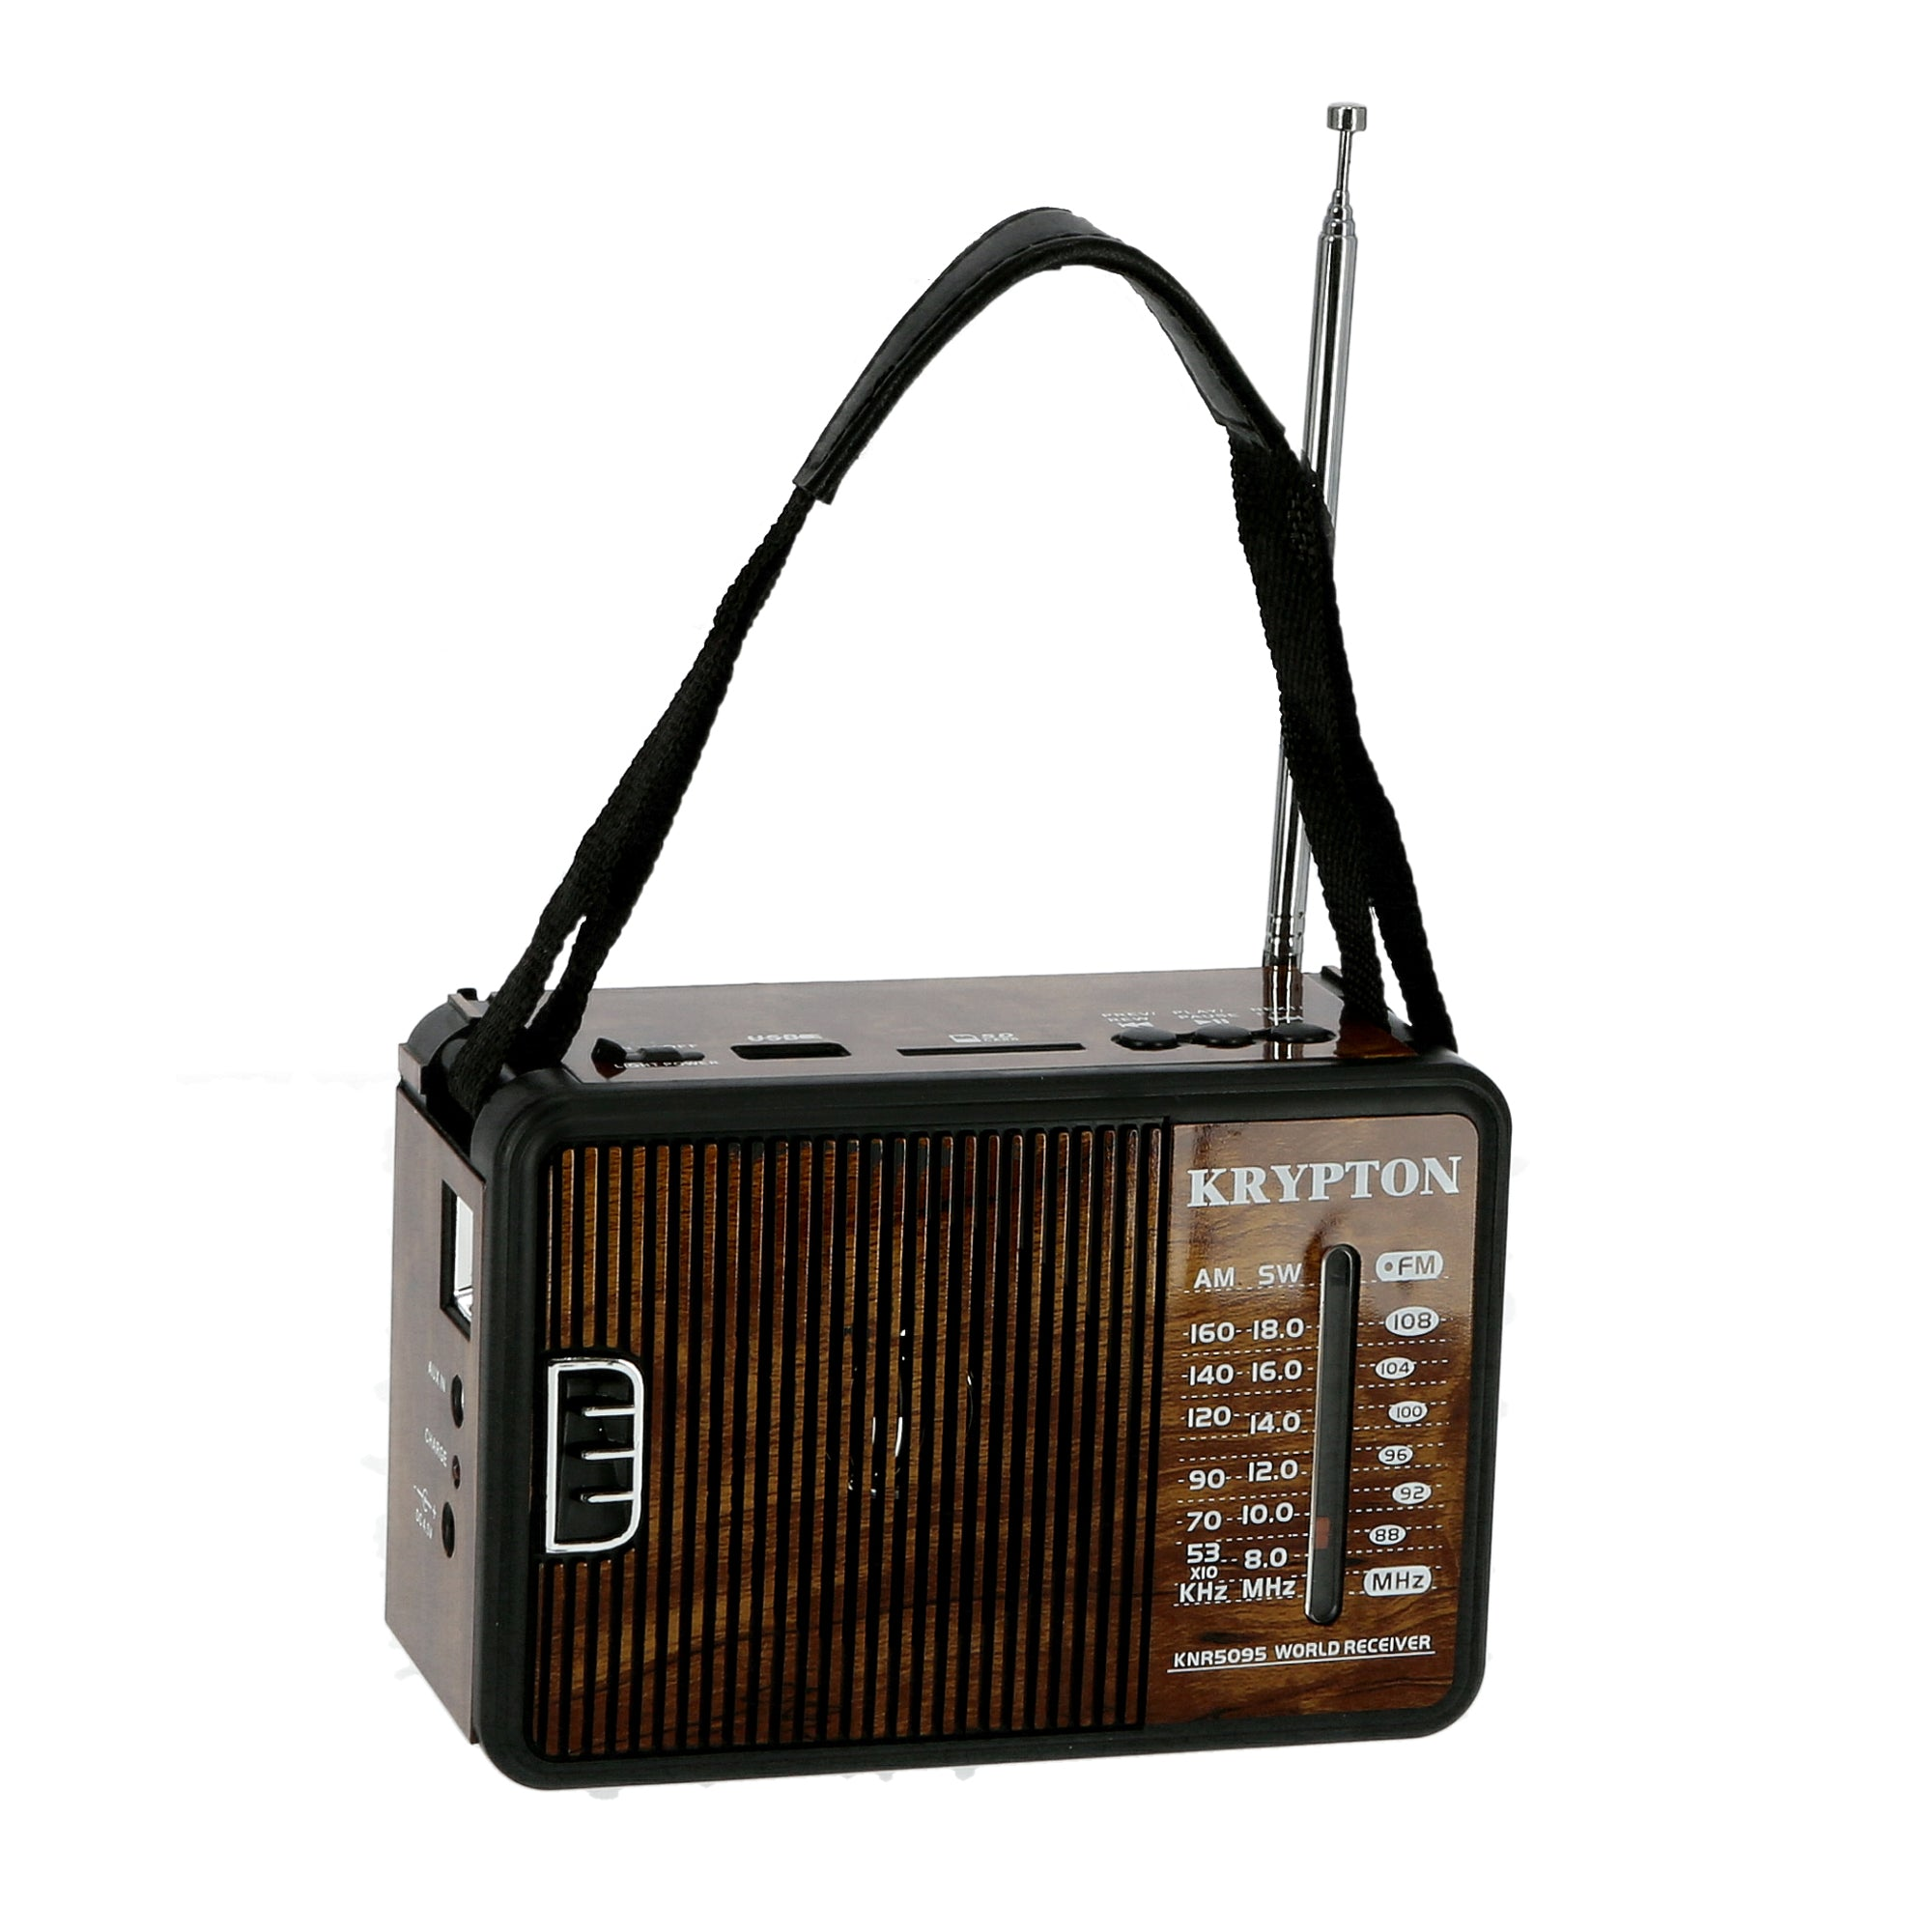 1000mAh Rechargeable Radio | BT/USB/SD/BT | Excellent Sound Quality | Lightweight Portable FM Radio | 8 Bands Radio | Stylish Retro Design